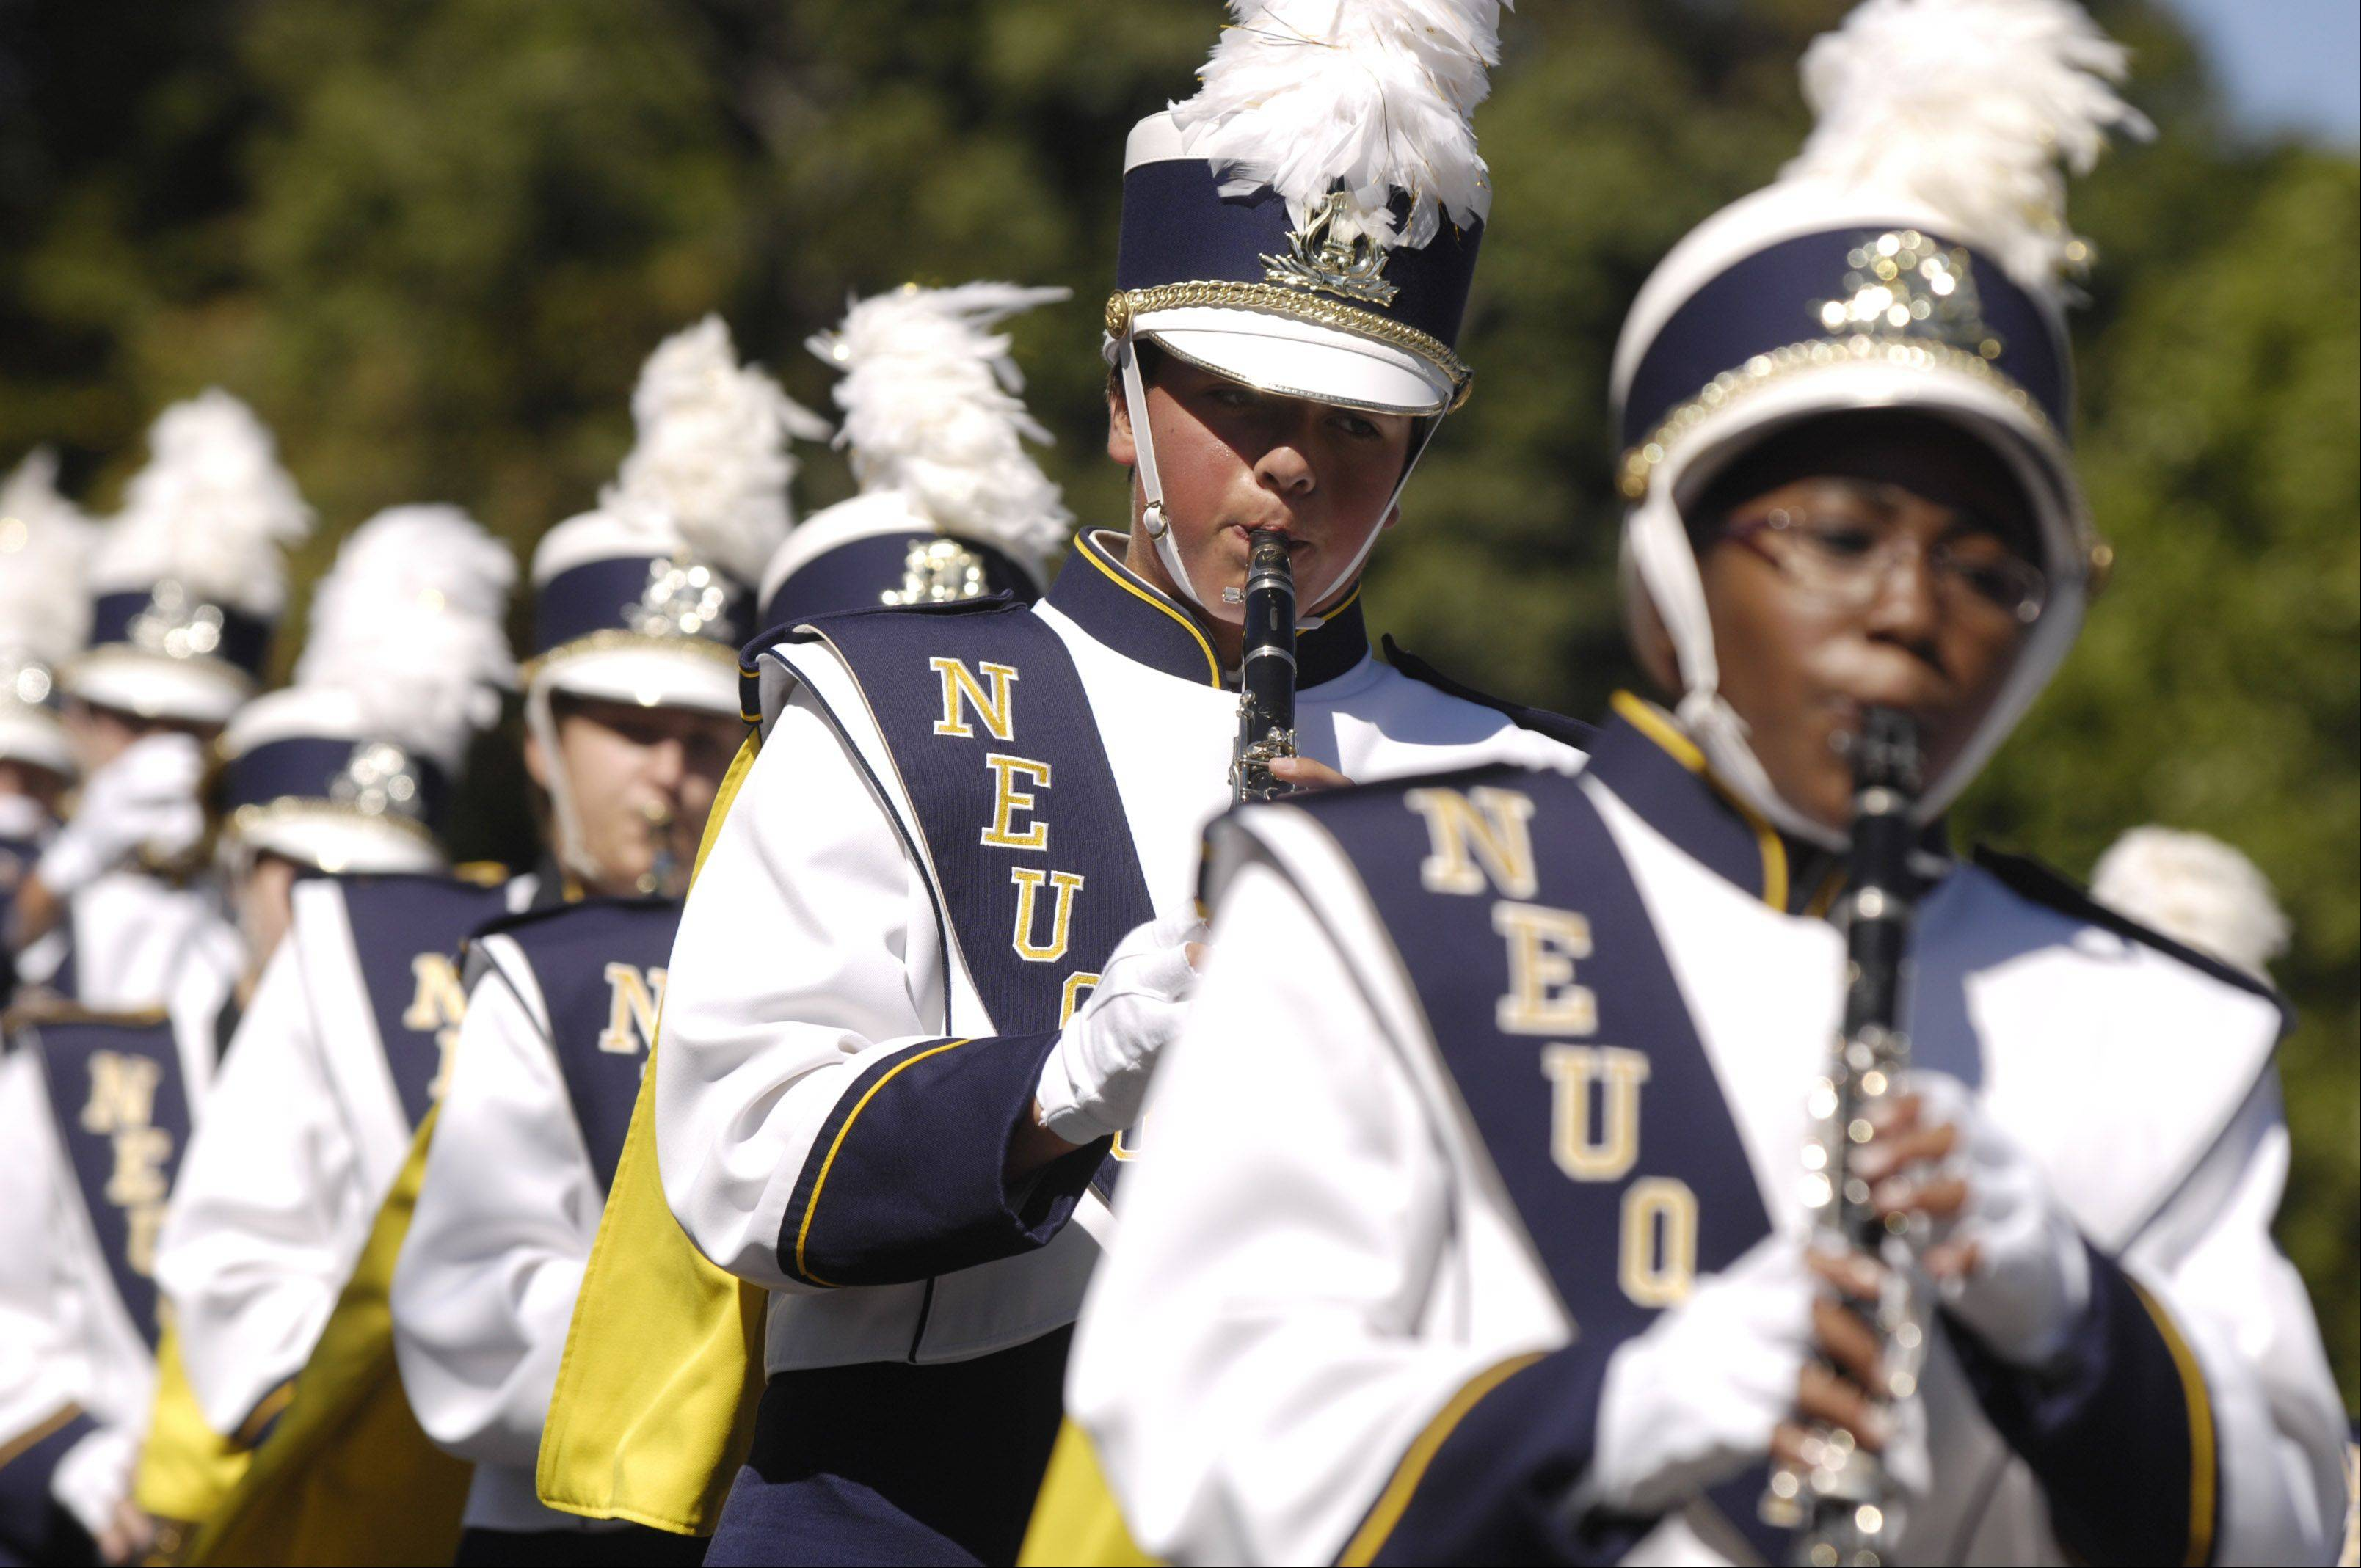 The Neuqua Valley High School marching band performs during Naperville's Last Fling summer parade Monday.